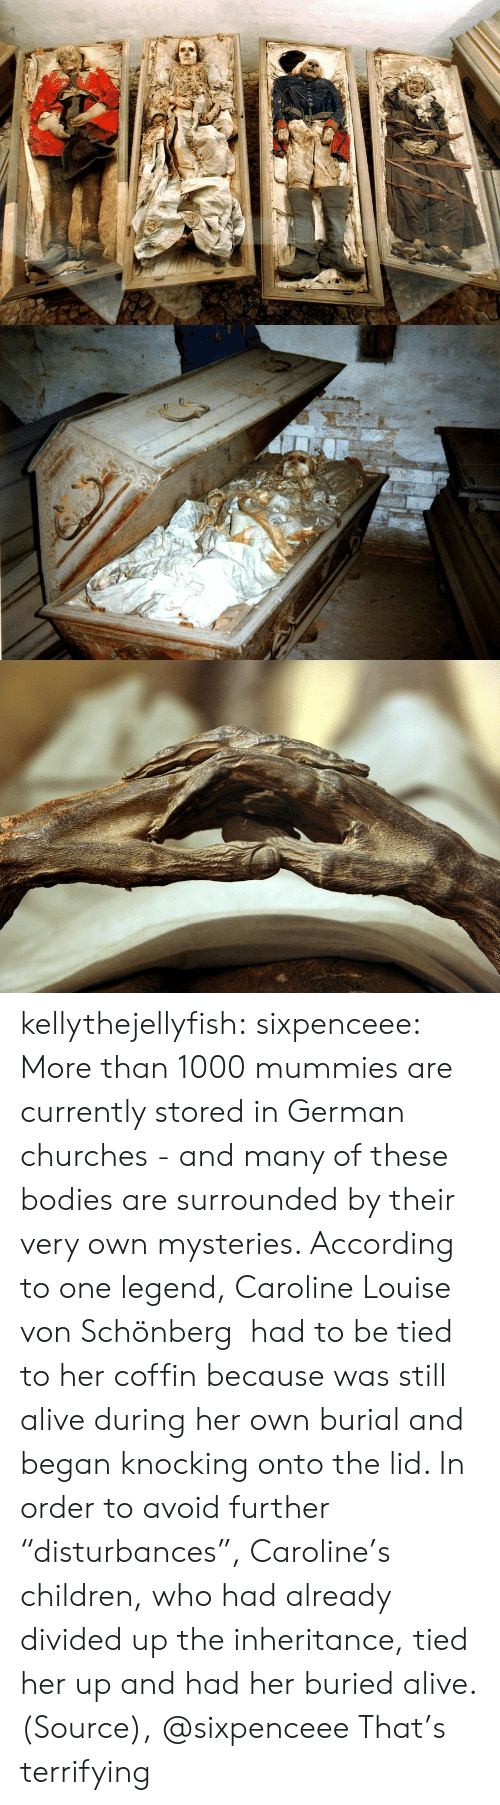 """Alive, Bodies , and Children: kellythejellyfish: sixpenceee:  More than 1000 mummies are currently stored in German churches - and many of these bodies are surrounded by their very own mysteries. According to one legend, Caroline Louise von Schönberg had to be tied to her coffin because was still alive during her own burial and began knocking onto the lid. In order to avoid further """"disturbances"""", Caroline's children, who had already divided up the inheritance, tied her up and had her buried alive. (Source), @sixpenceee  That's terrifying"""